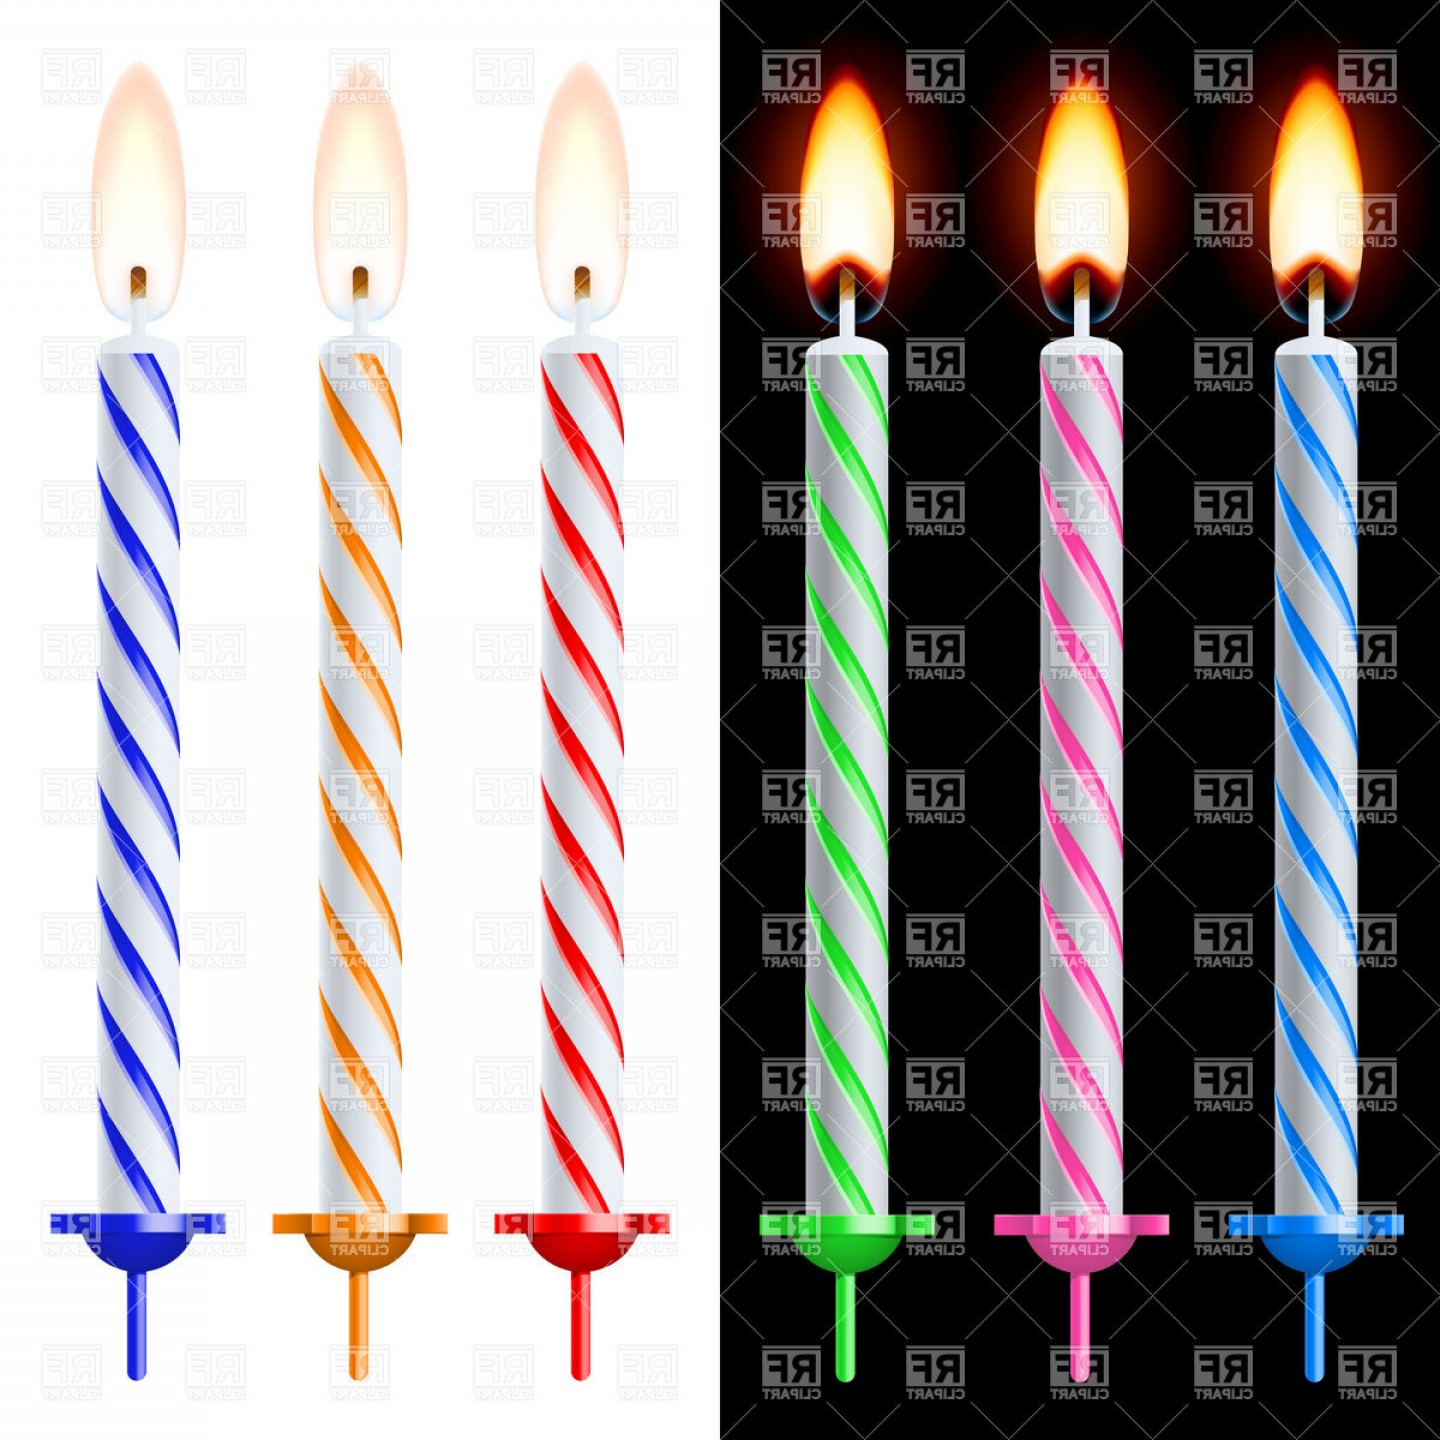 Birthday Candle Vector Art: Colorful Birthday Cake Candles Vector Clipart